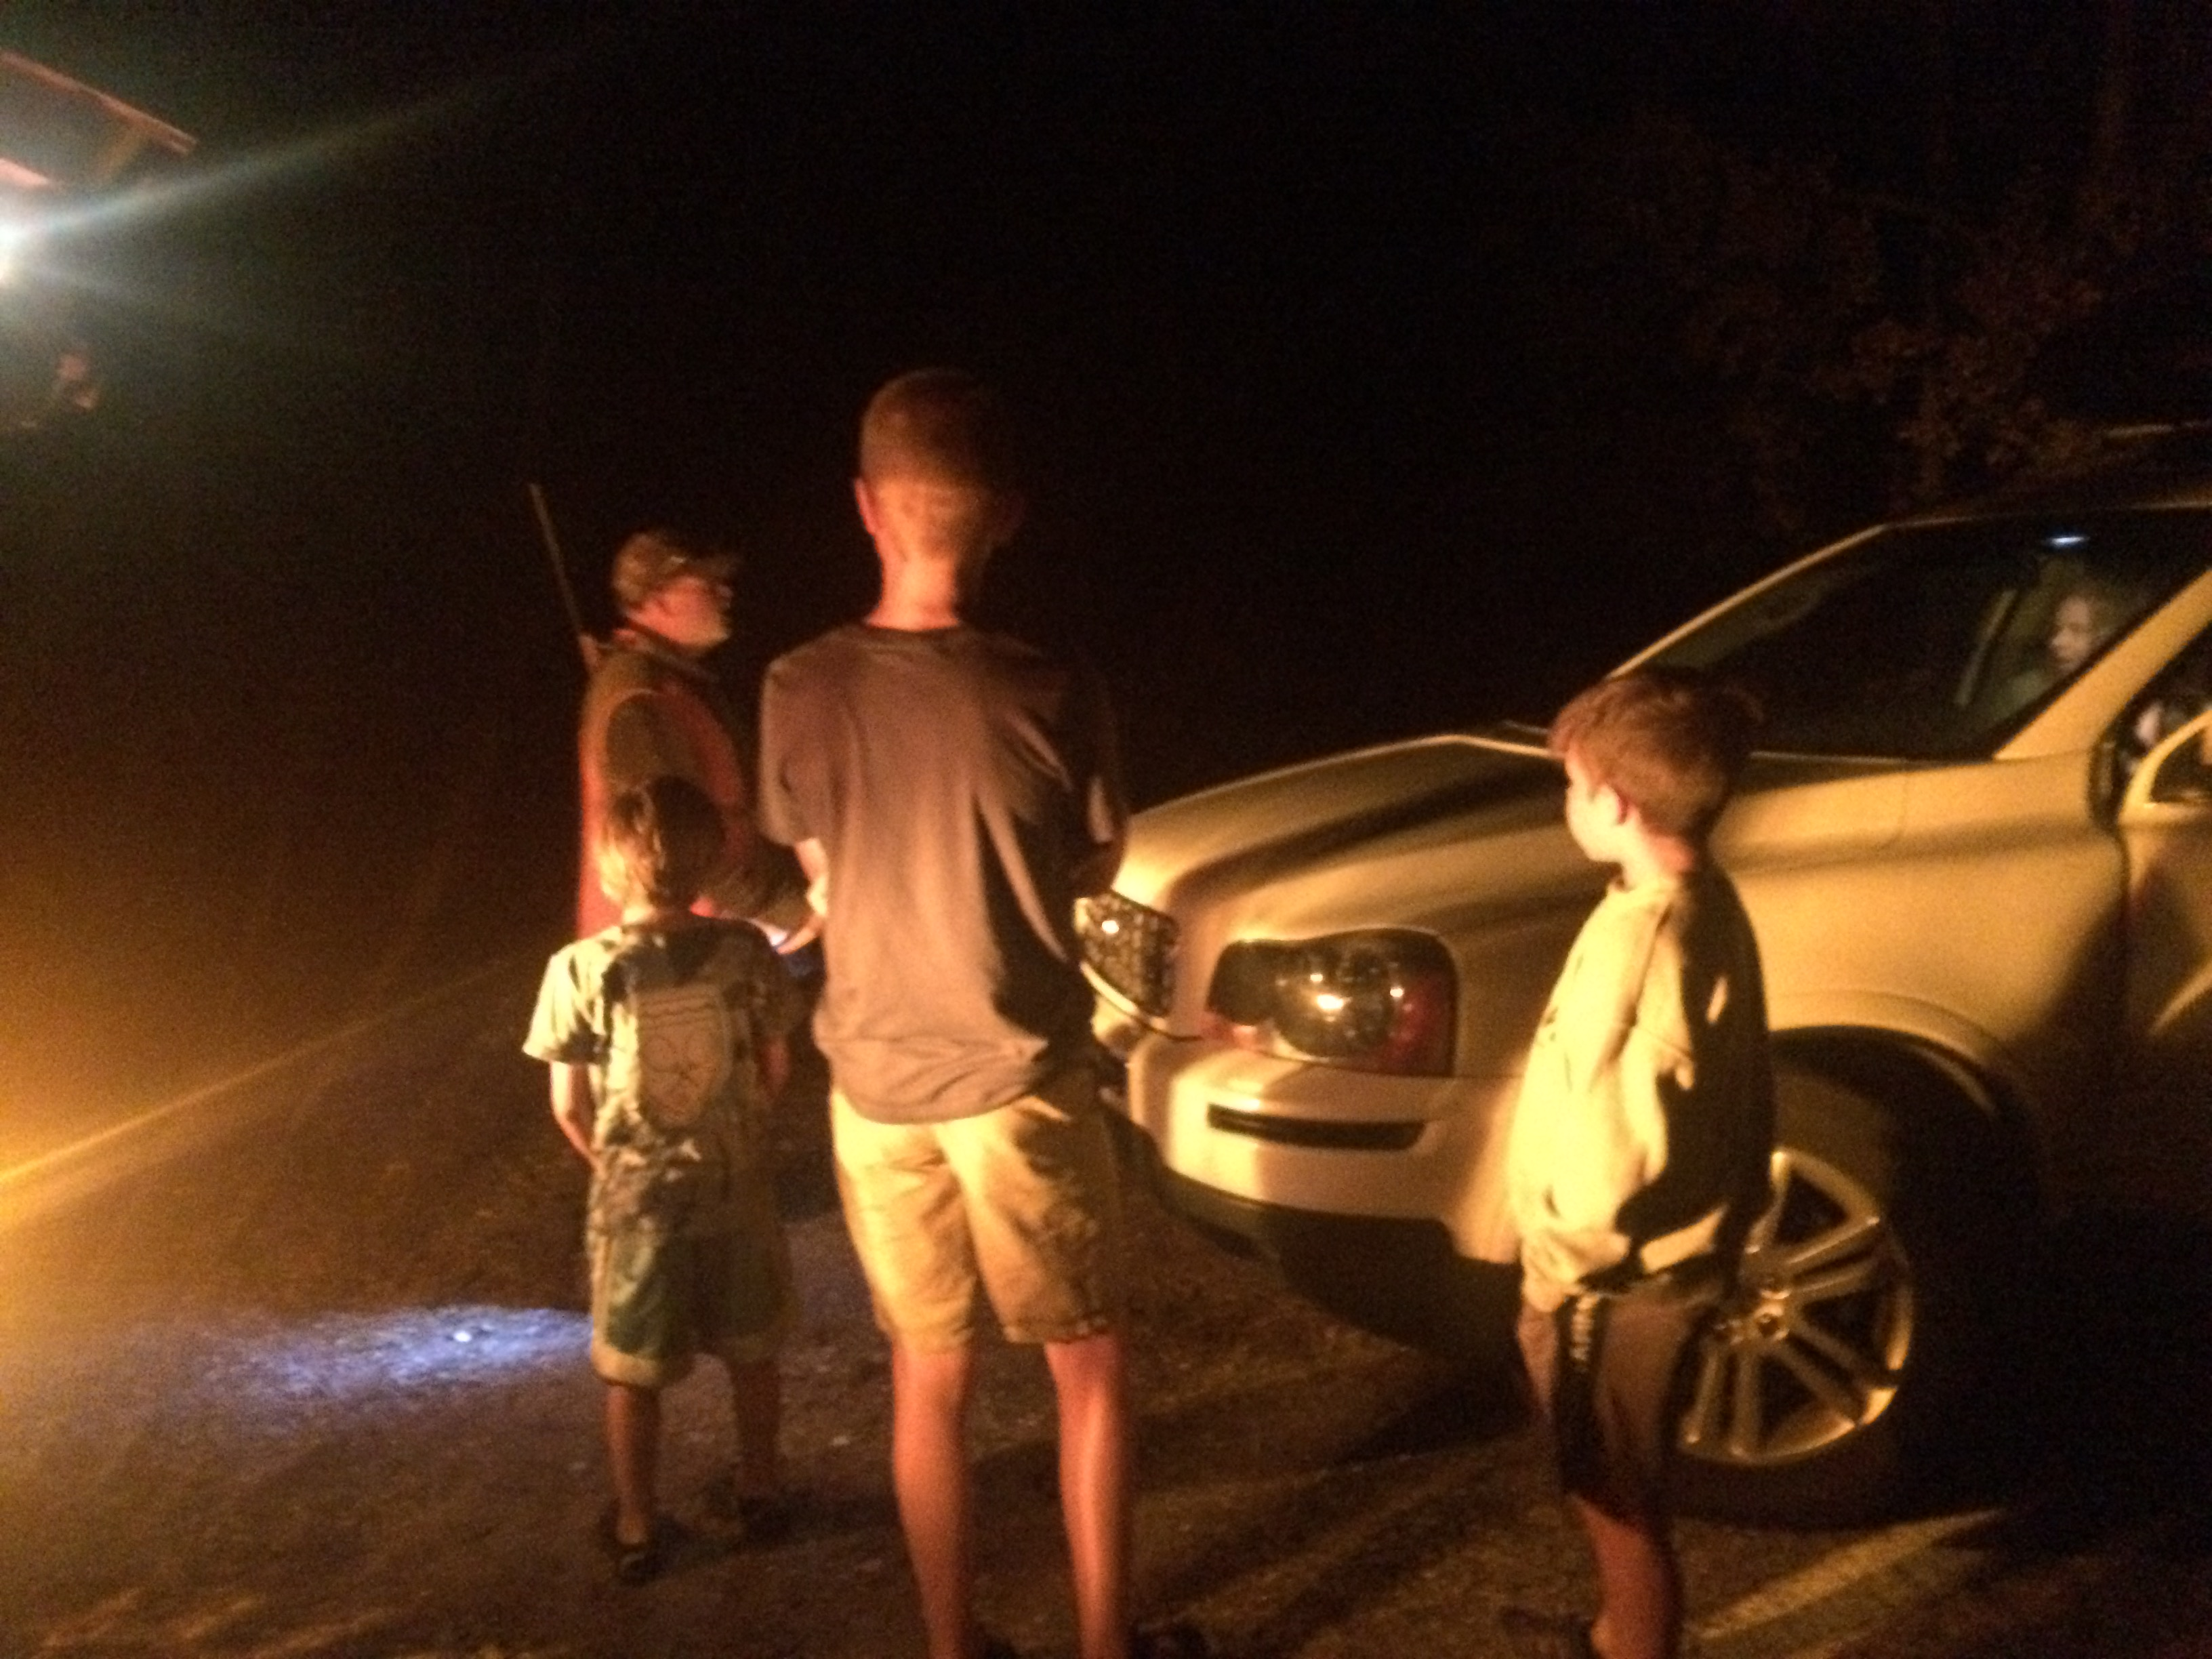 The Dayton family speaks with an elk hunter who lost his way and needed a ride. Escalante, Utah, October 2015   Photo by Kat Dayton, St. George News